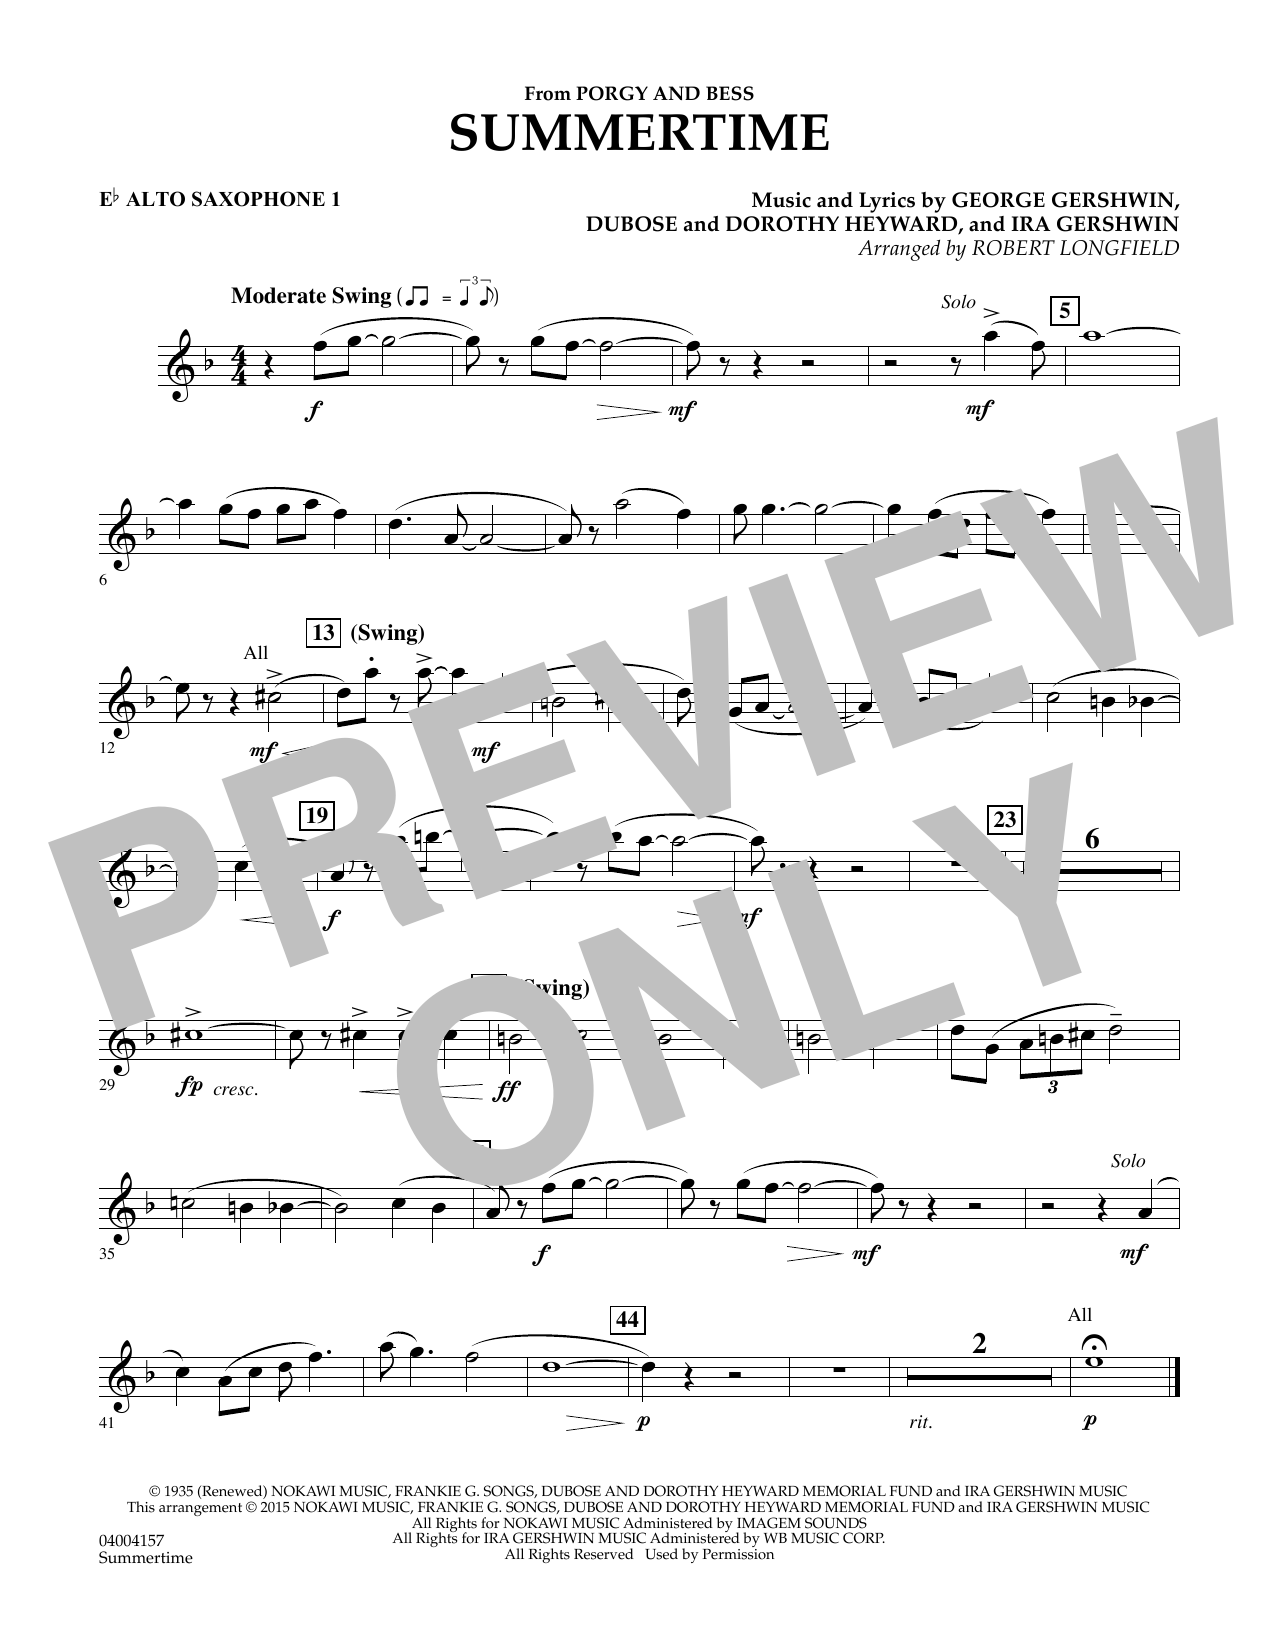 Summertime (from Porgy and Bess) - Eb Alto Saxophone 1 (Concert Band)